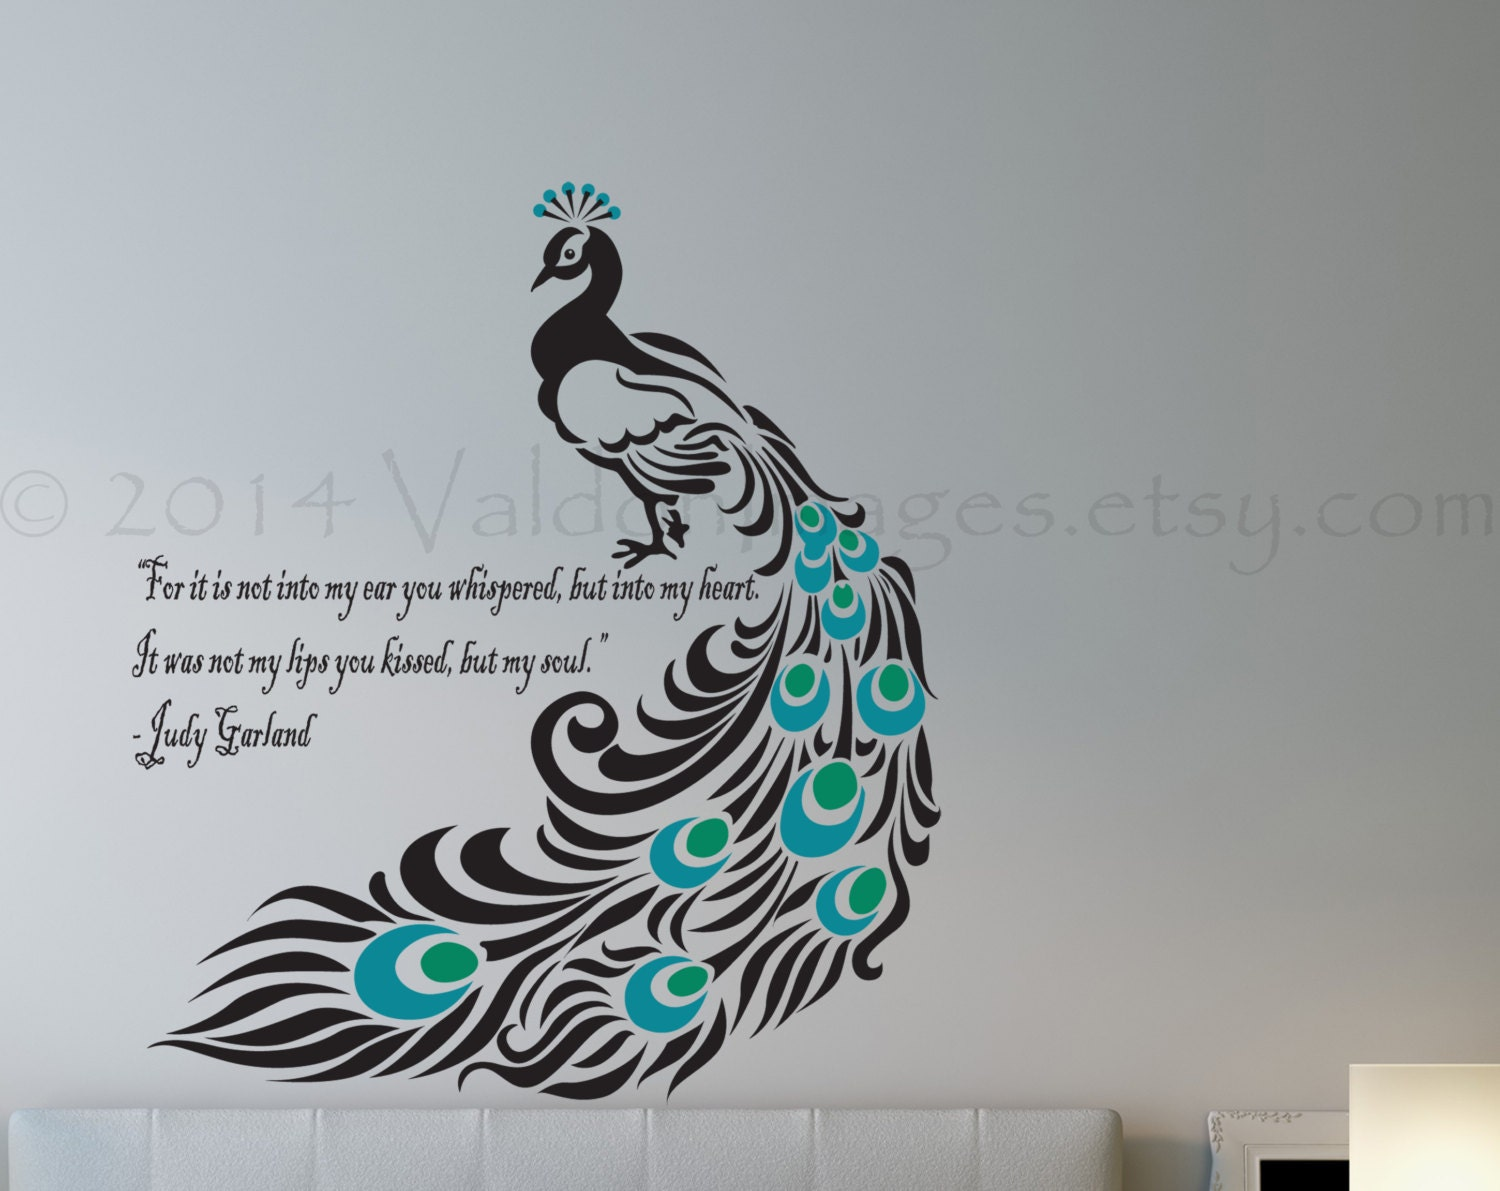 Peacock Wall Art Unique Peacock Wall Decal Bird Wall Decal Bedroom Wall Decal Design Inspiration